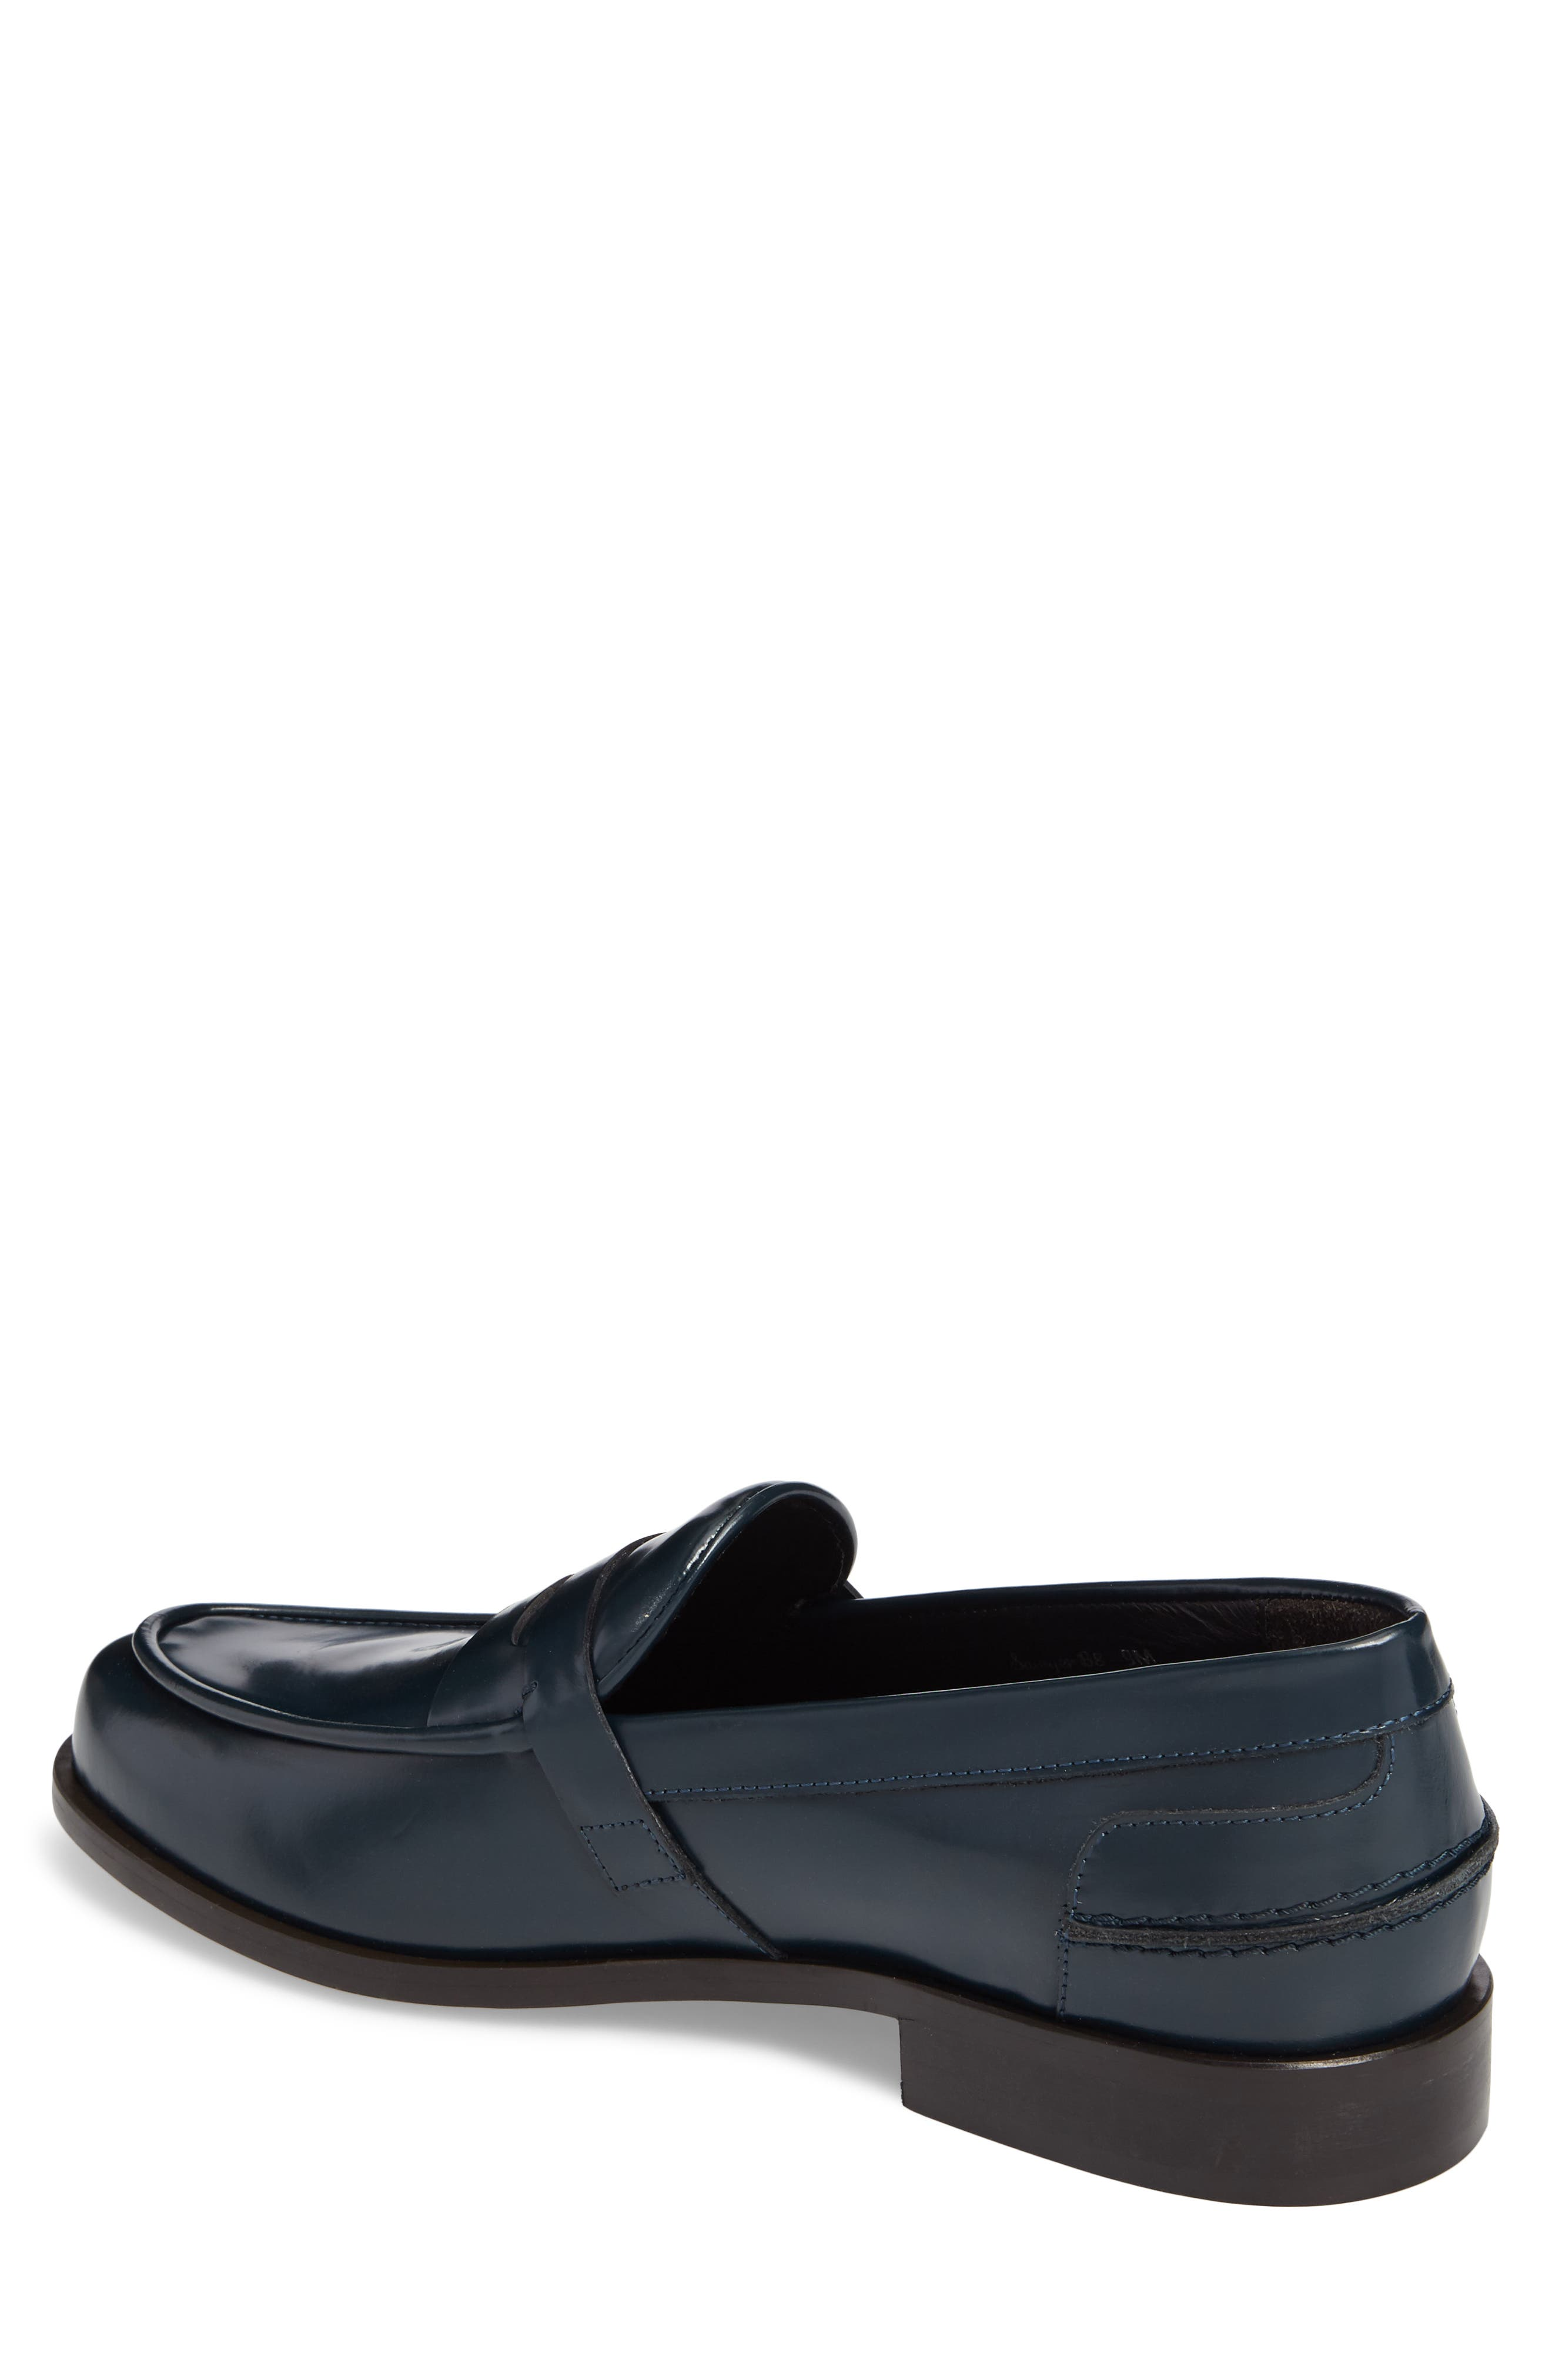 Donald J Pliner Sawyer Penny Loafer,                             Alternate thumbnail 4, color,